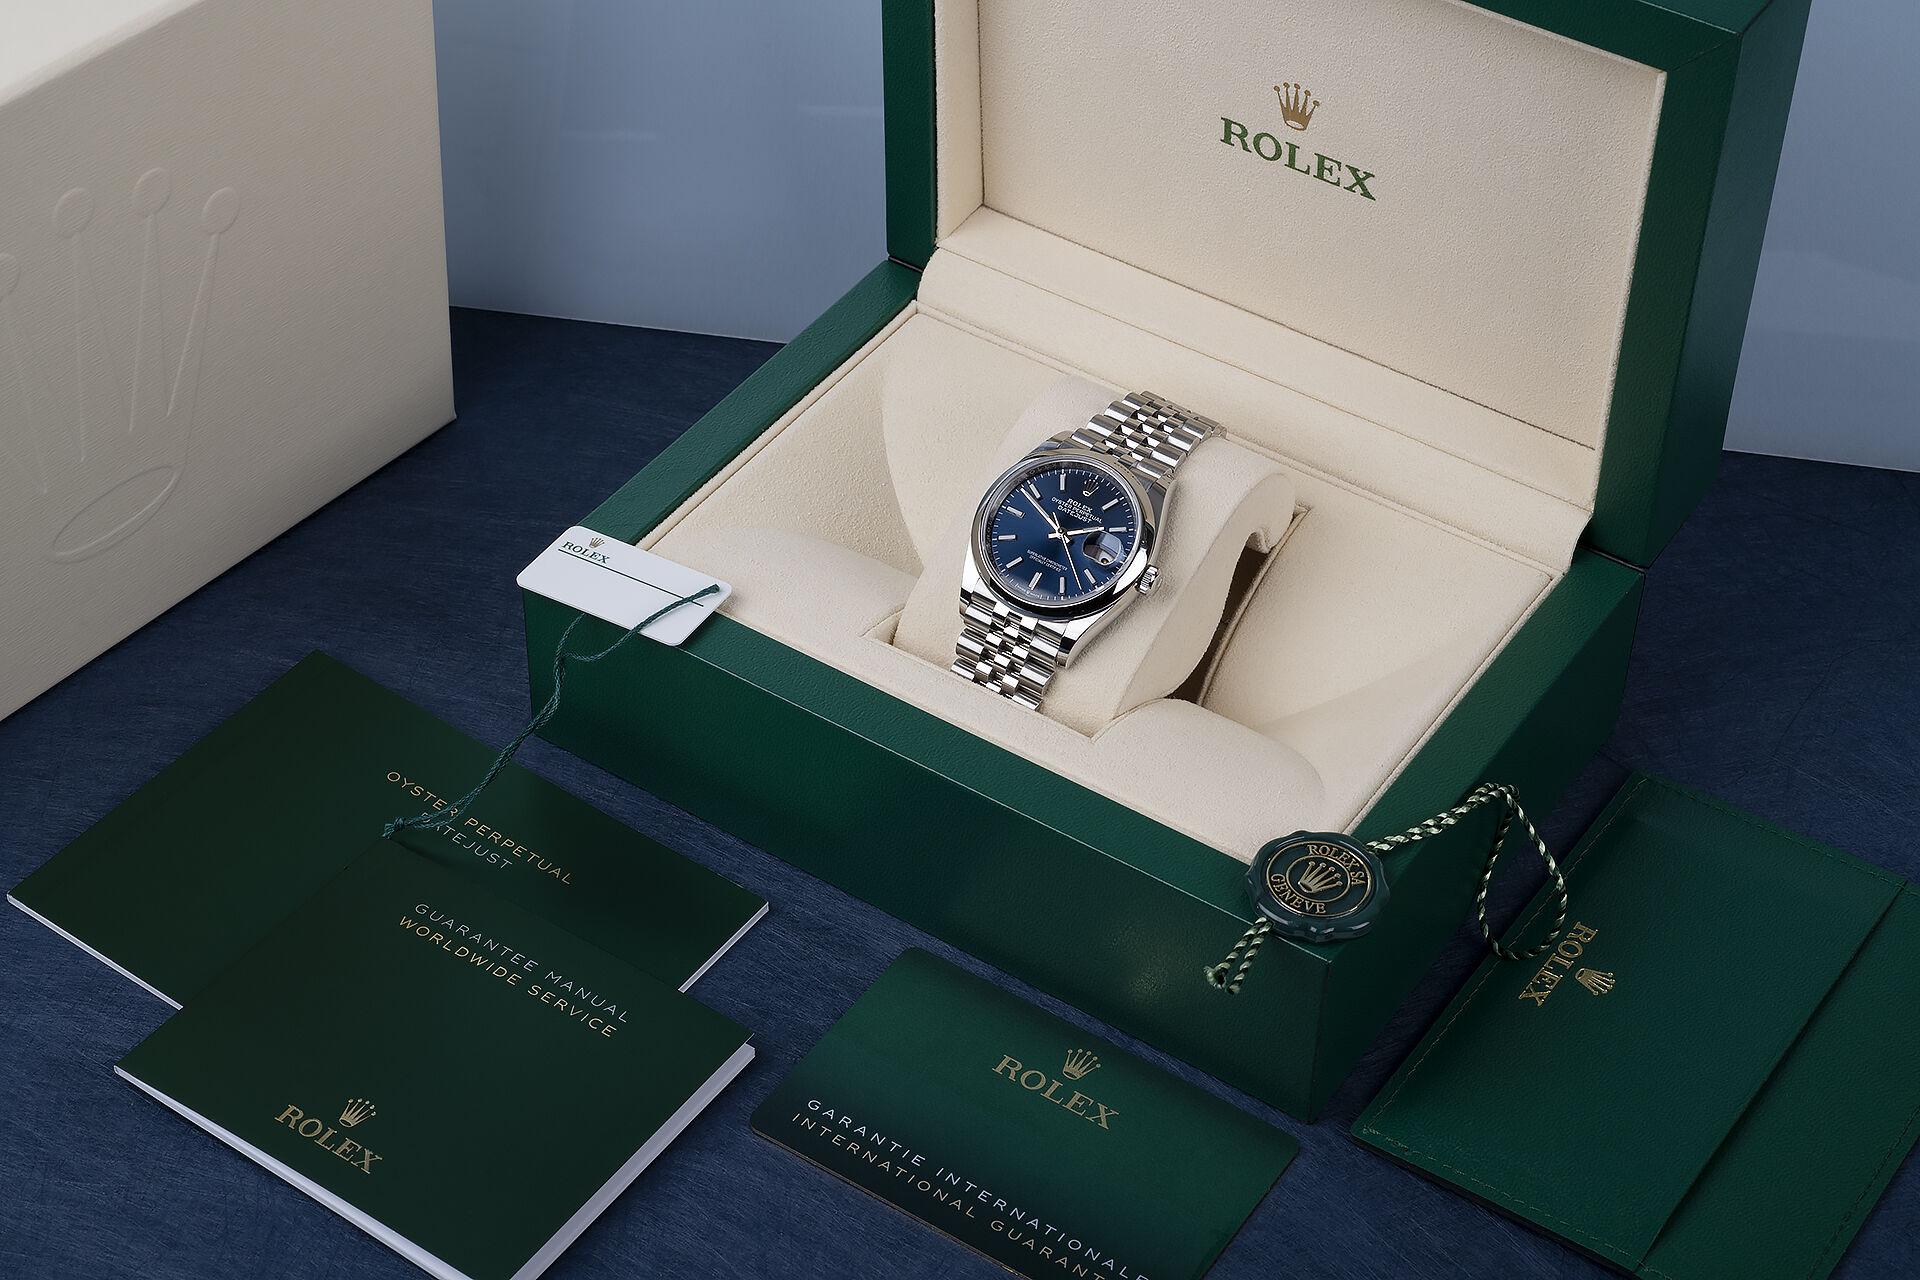 ref 126200 | 5 Year Rolex Warranty | Rolex Datejust 36